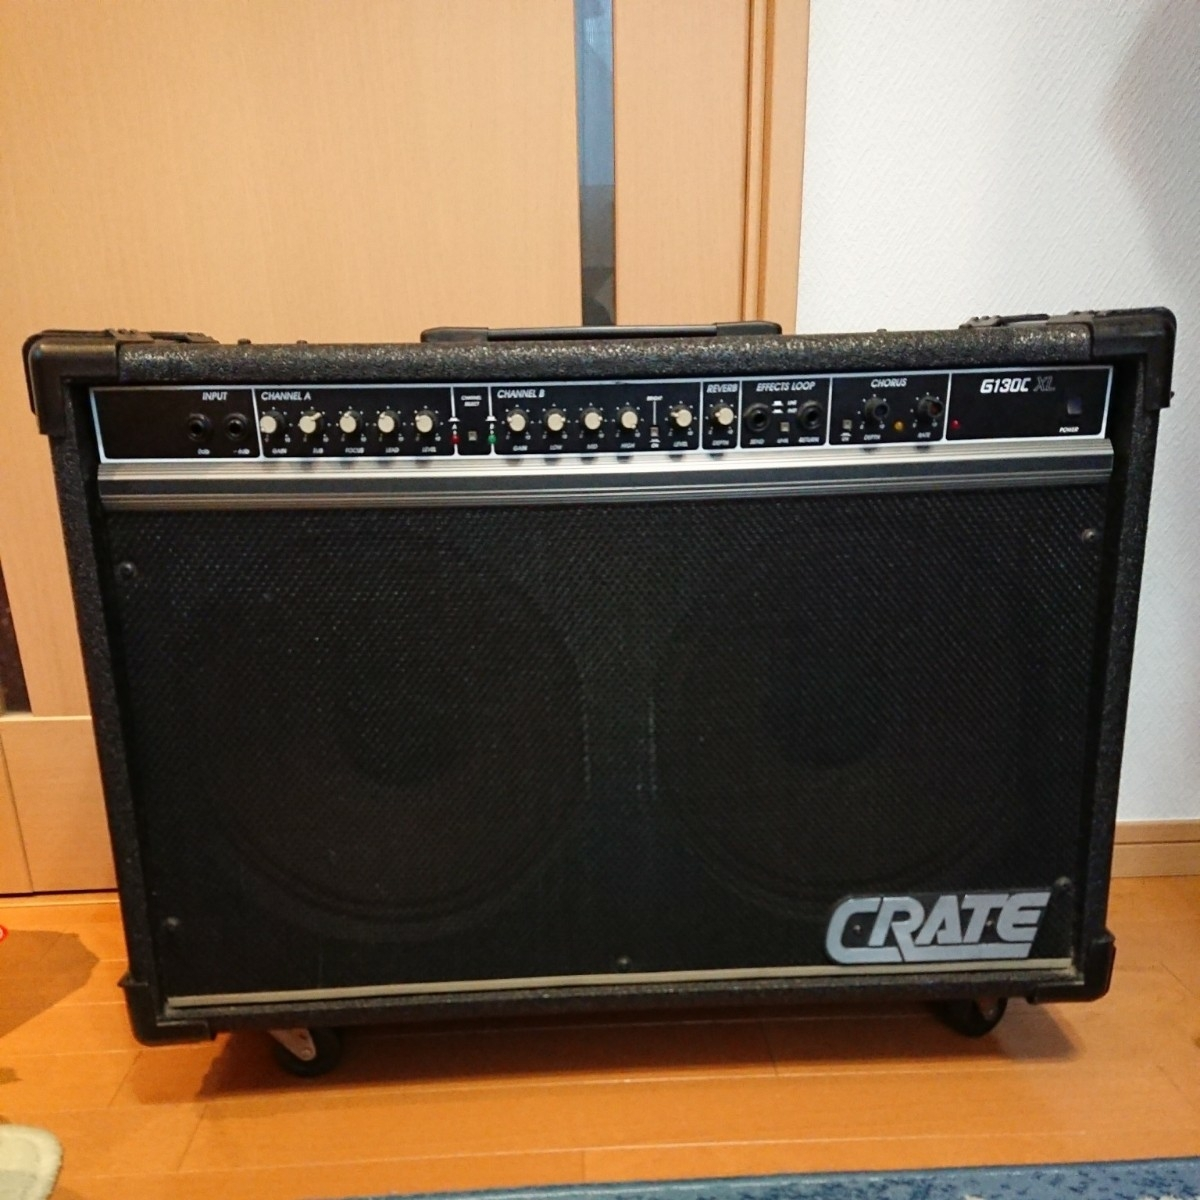 CRATE ギターアンプ G130C XL made in USA